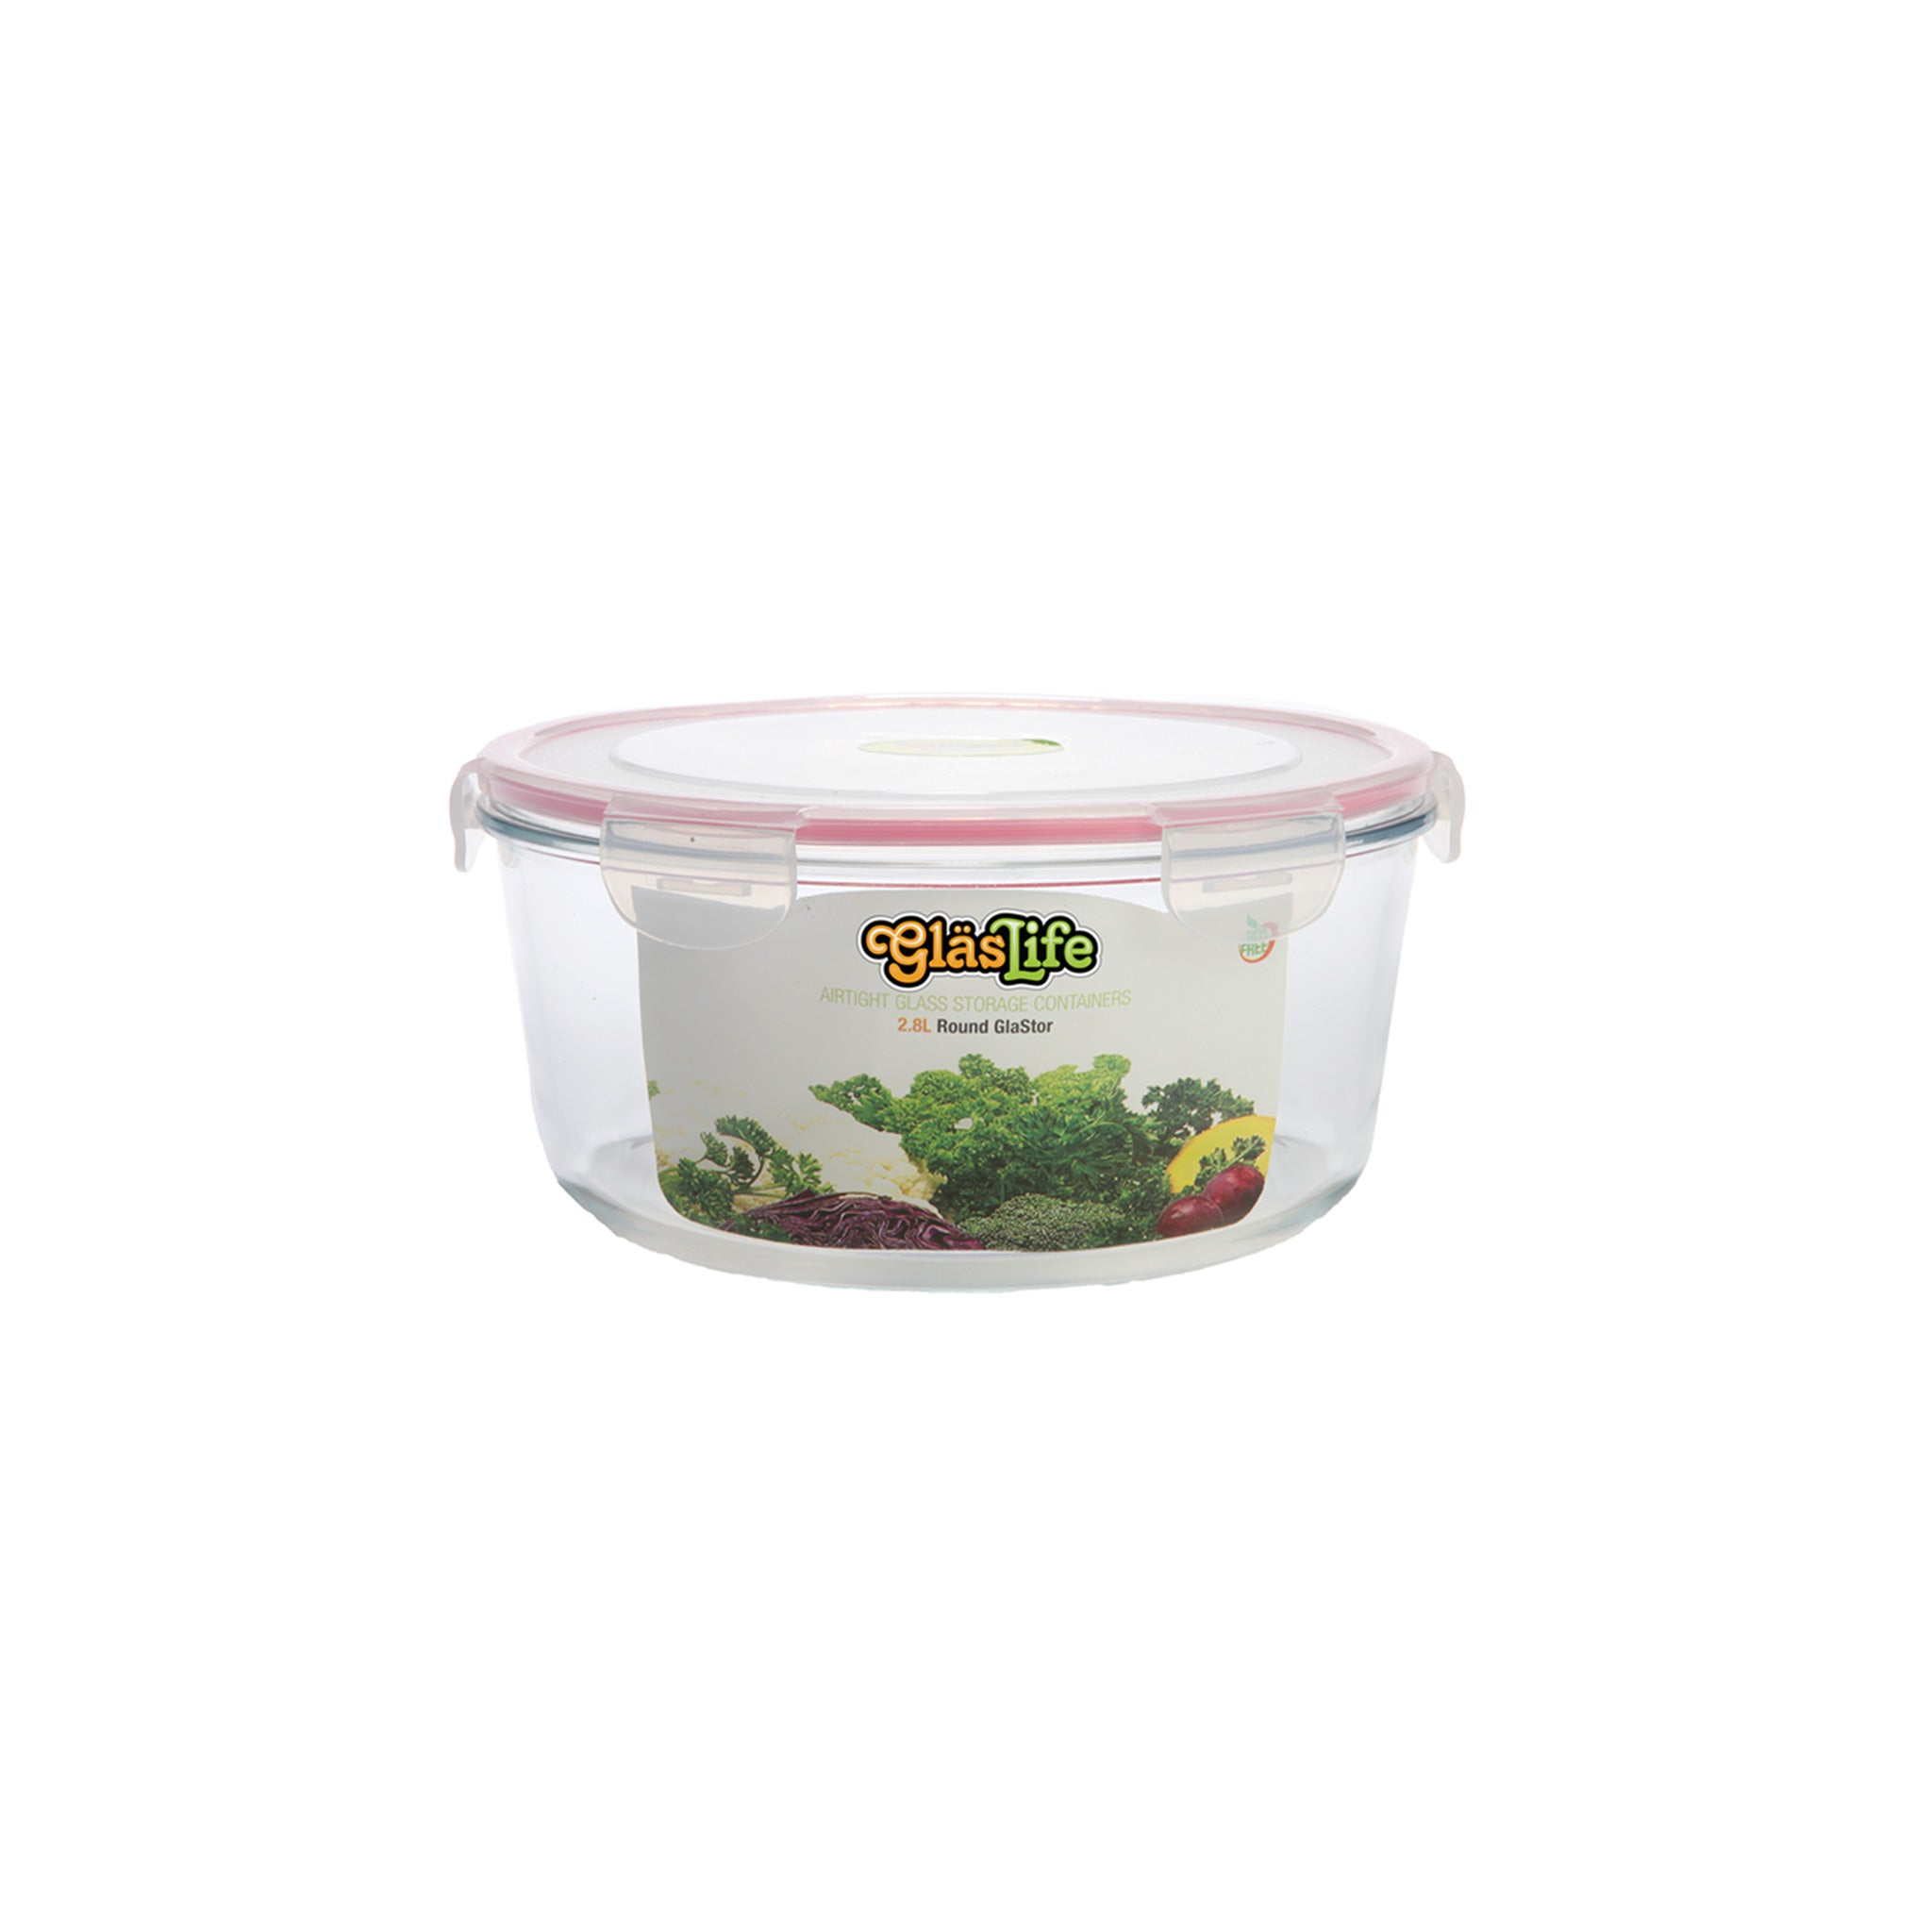 GlasLife® Air-Tight Glass Storage Container - Round GLC045 Small 15 oz / 0.45 L